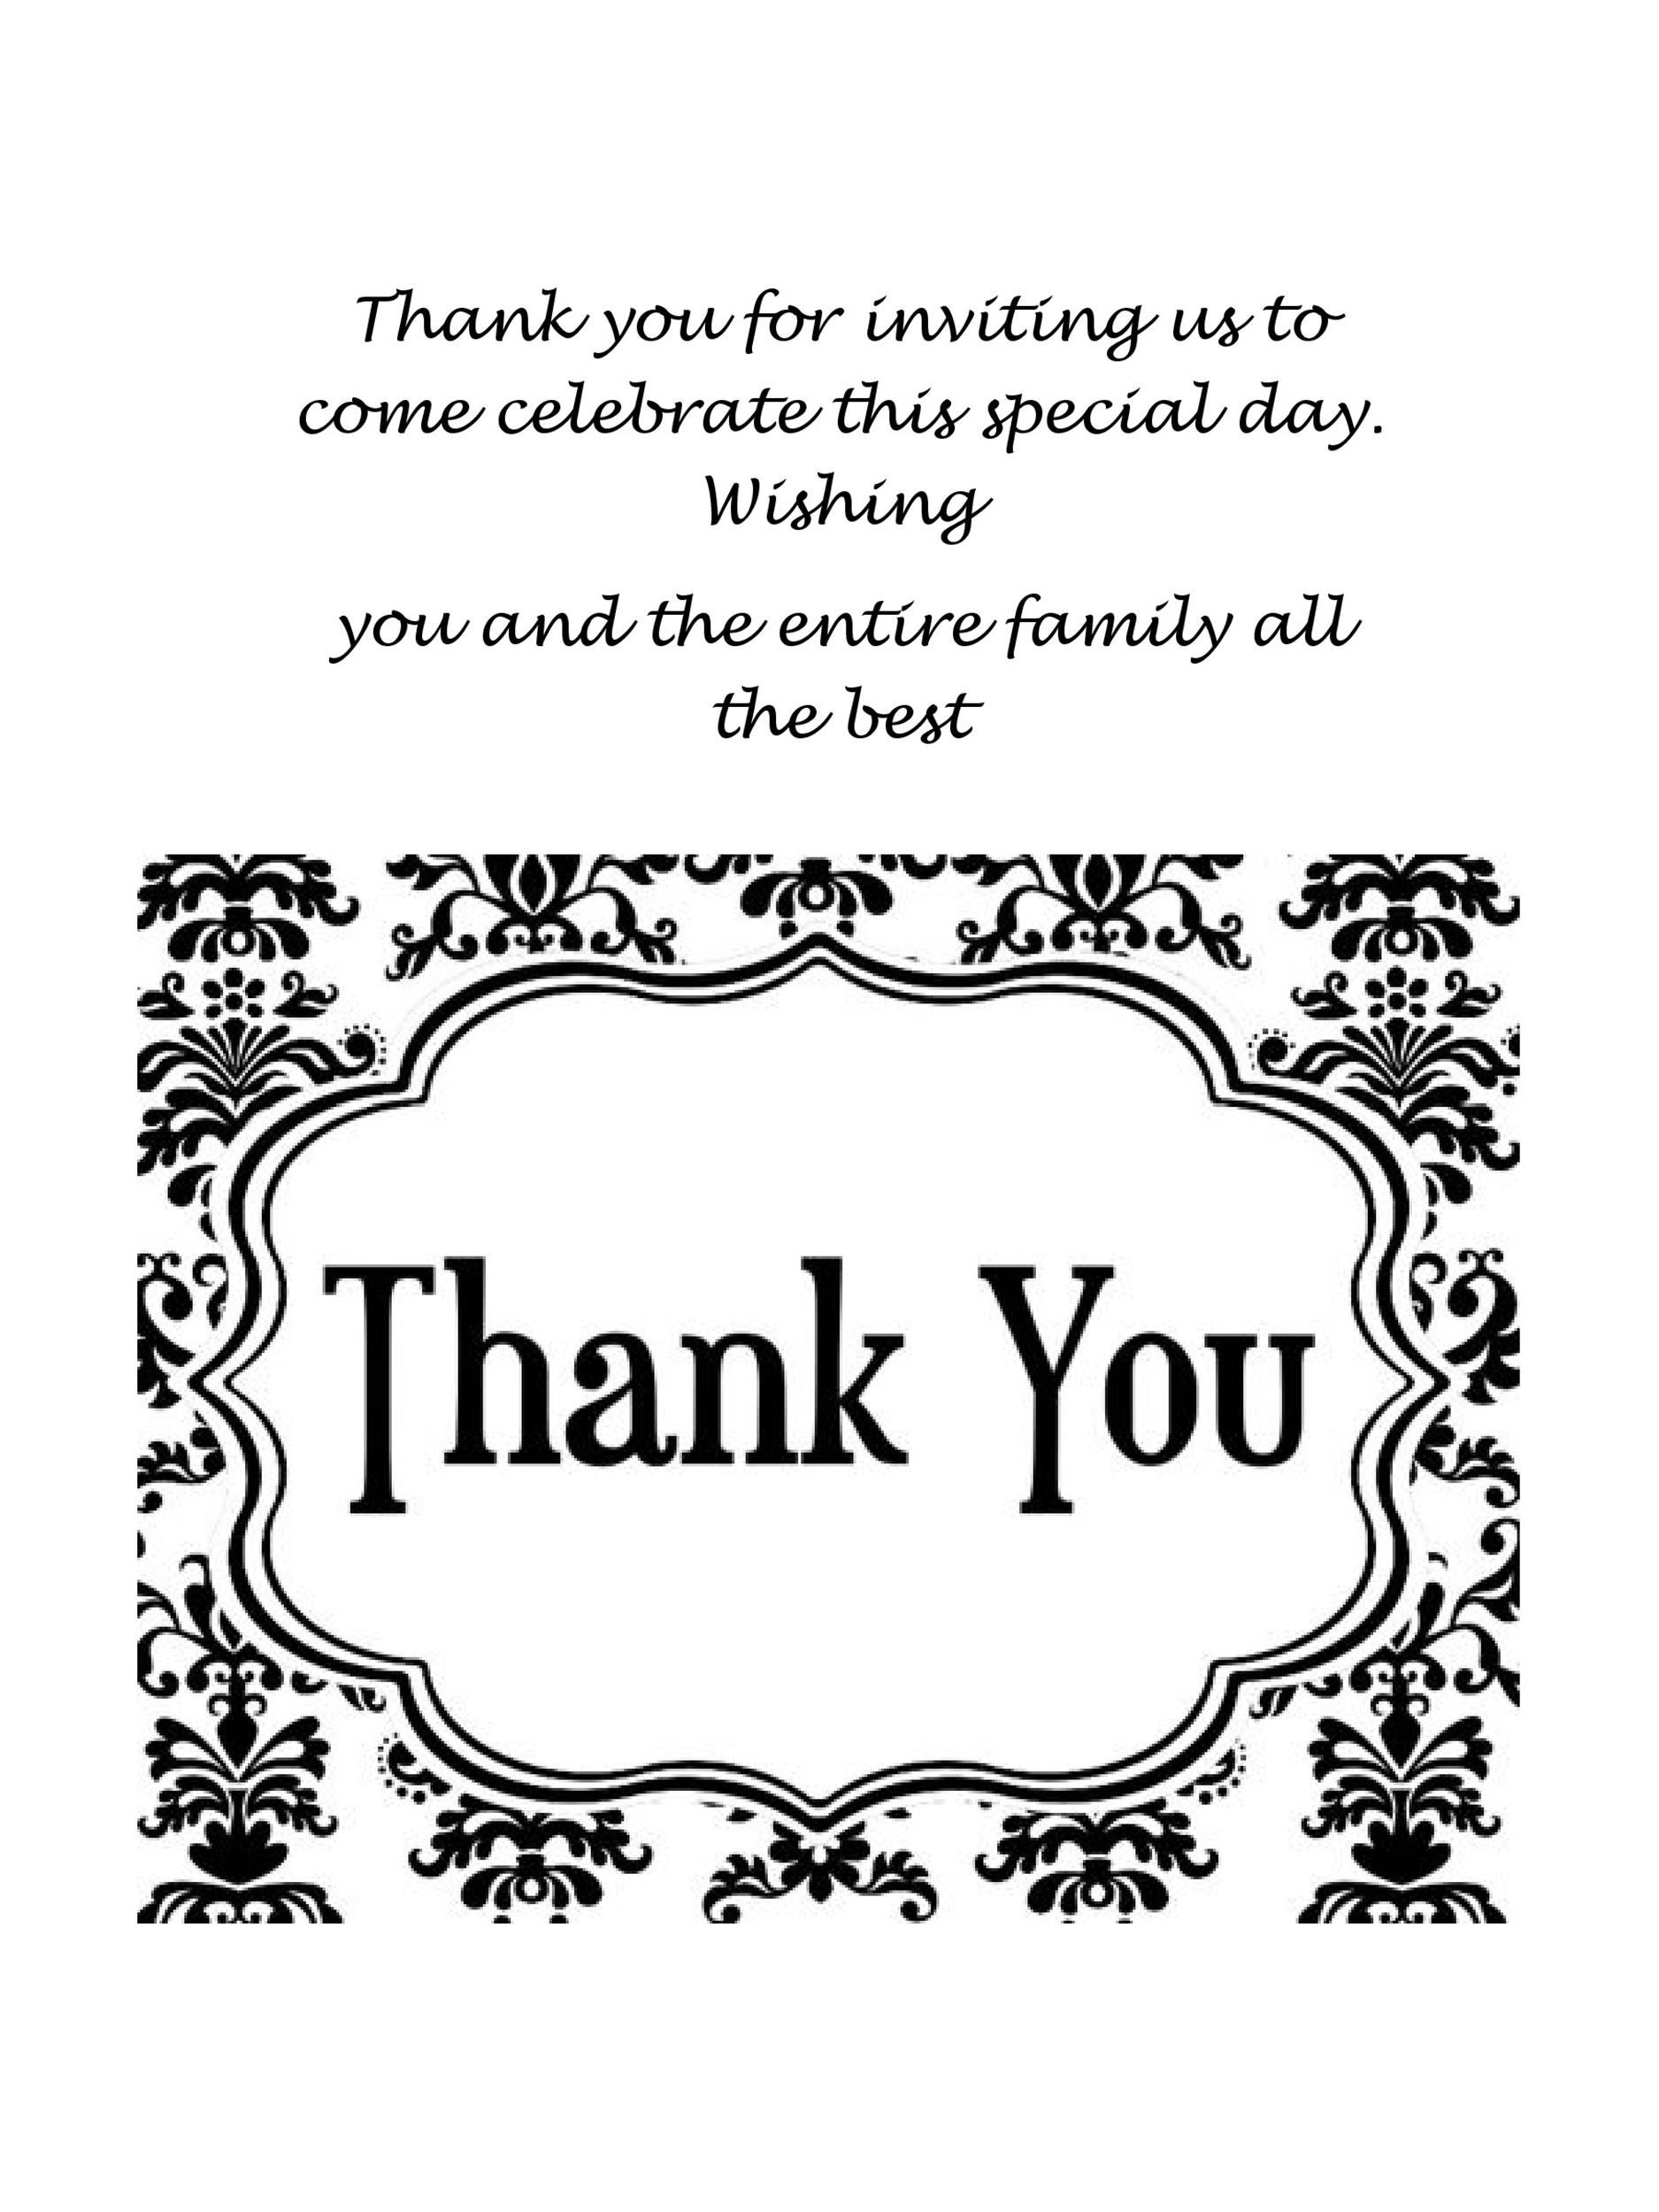 008 Archaicawful Thank You Card Template Design  Wedding Busines Word FreeFull